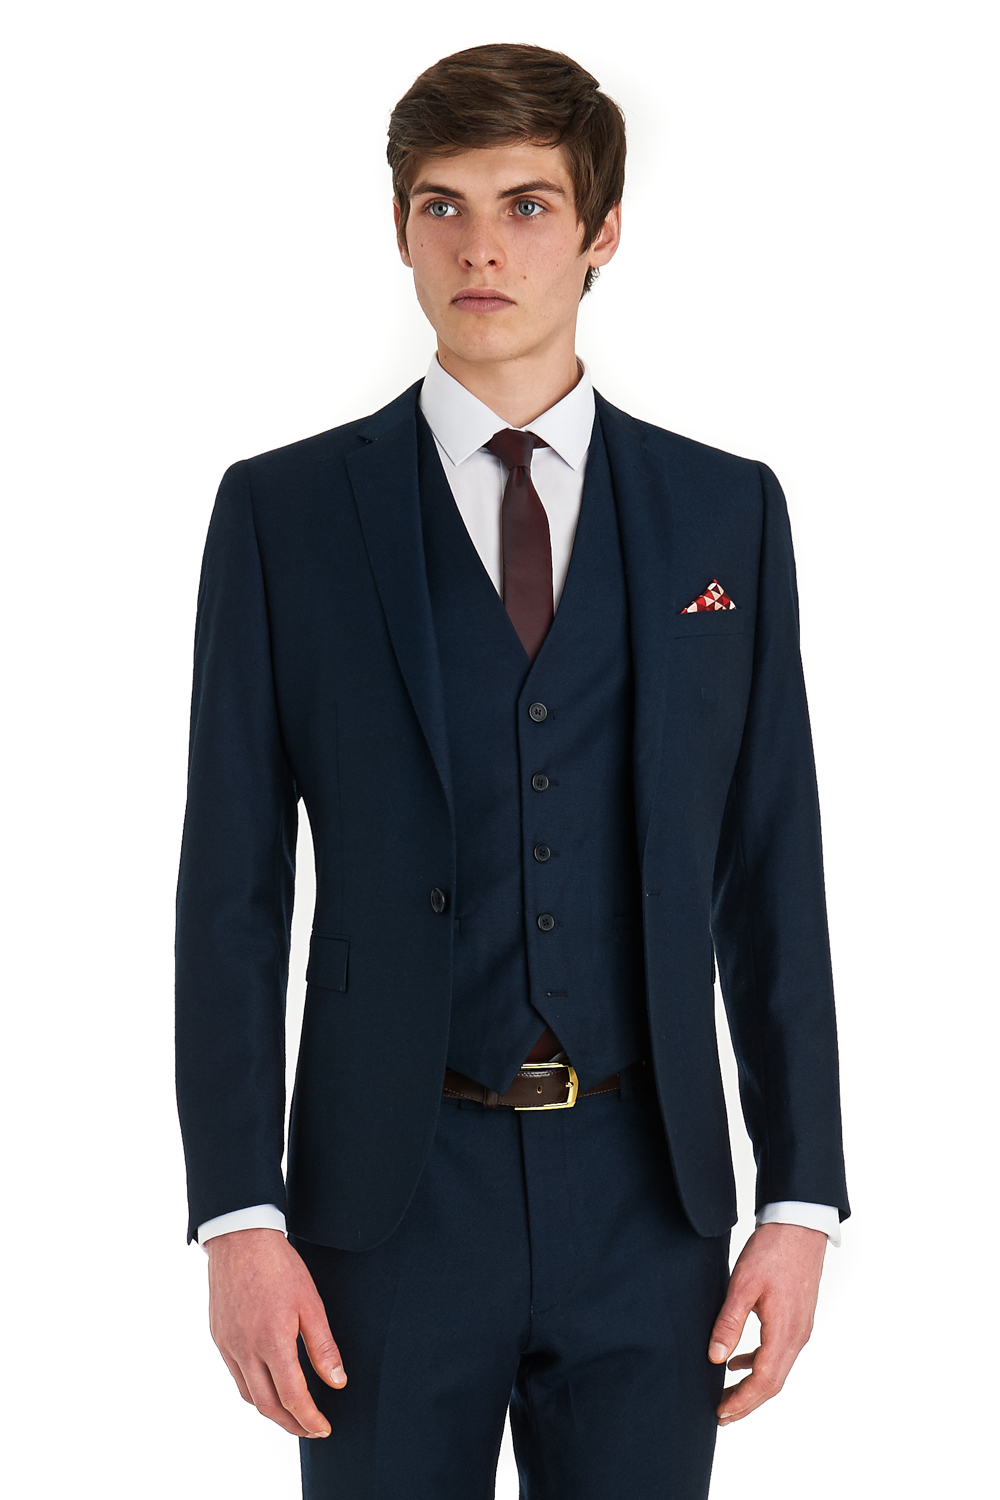 3 Piece Slim Fit Suit Sale | My Dress Tip